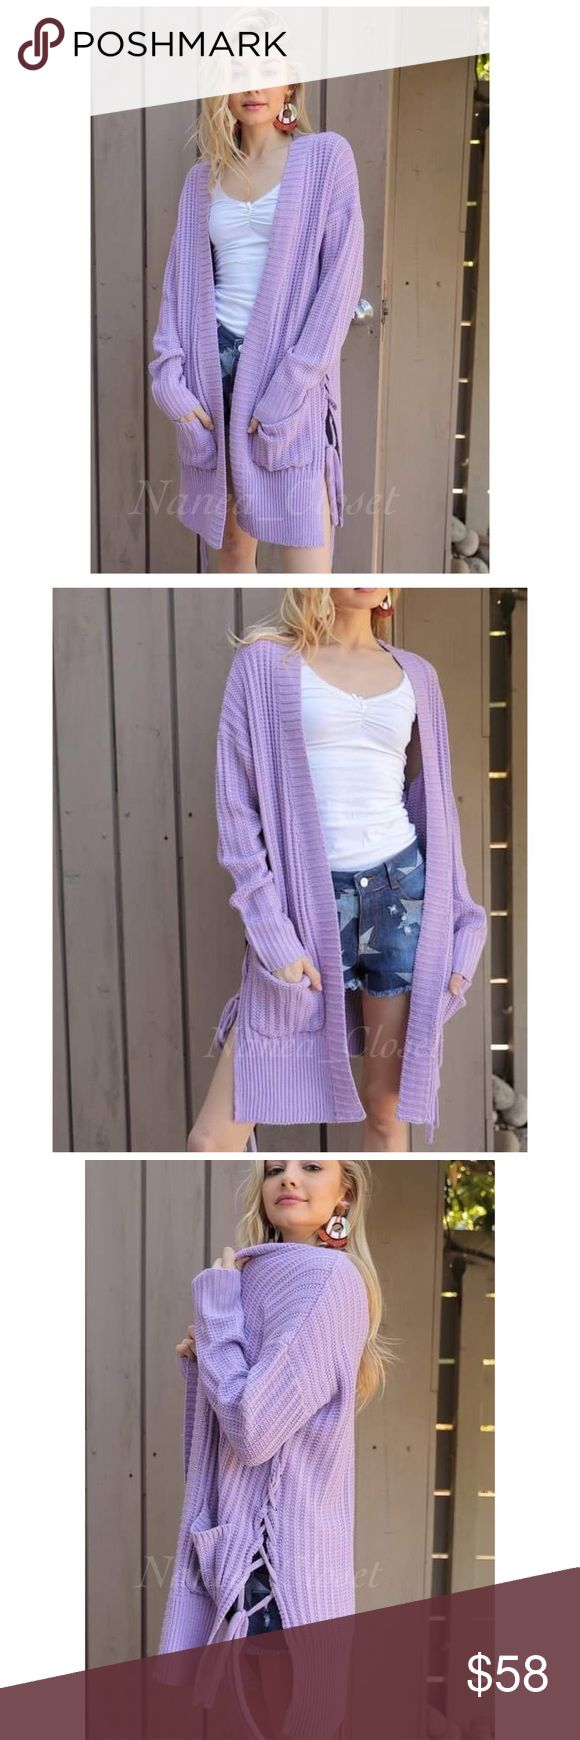 🆕 Open Knit Cardigan | Lilac Open Knot Cardigan  This is a long sleeve open knit cardigan, with two front pockets, and a unique side tie detail. Perfect to layer over a light long sleeve for the cooler temperatures, and a cute pair of distressed jeans. Very cozy and comfortable.  Detail: Sizes Available: S, M, L Color: Lilac Materials: 75% Acrylic, 25% Cotton Nanea_Closet Sweaters Cardigans